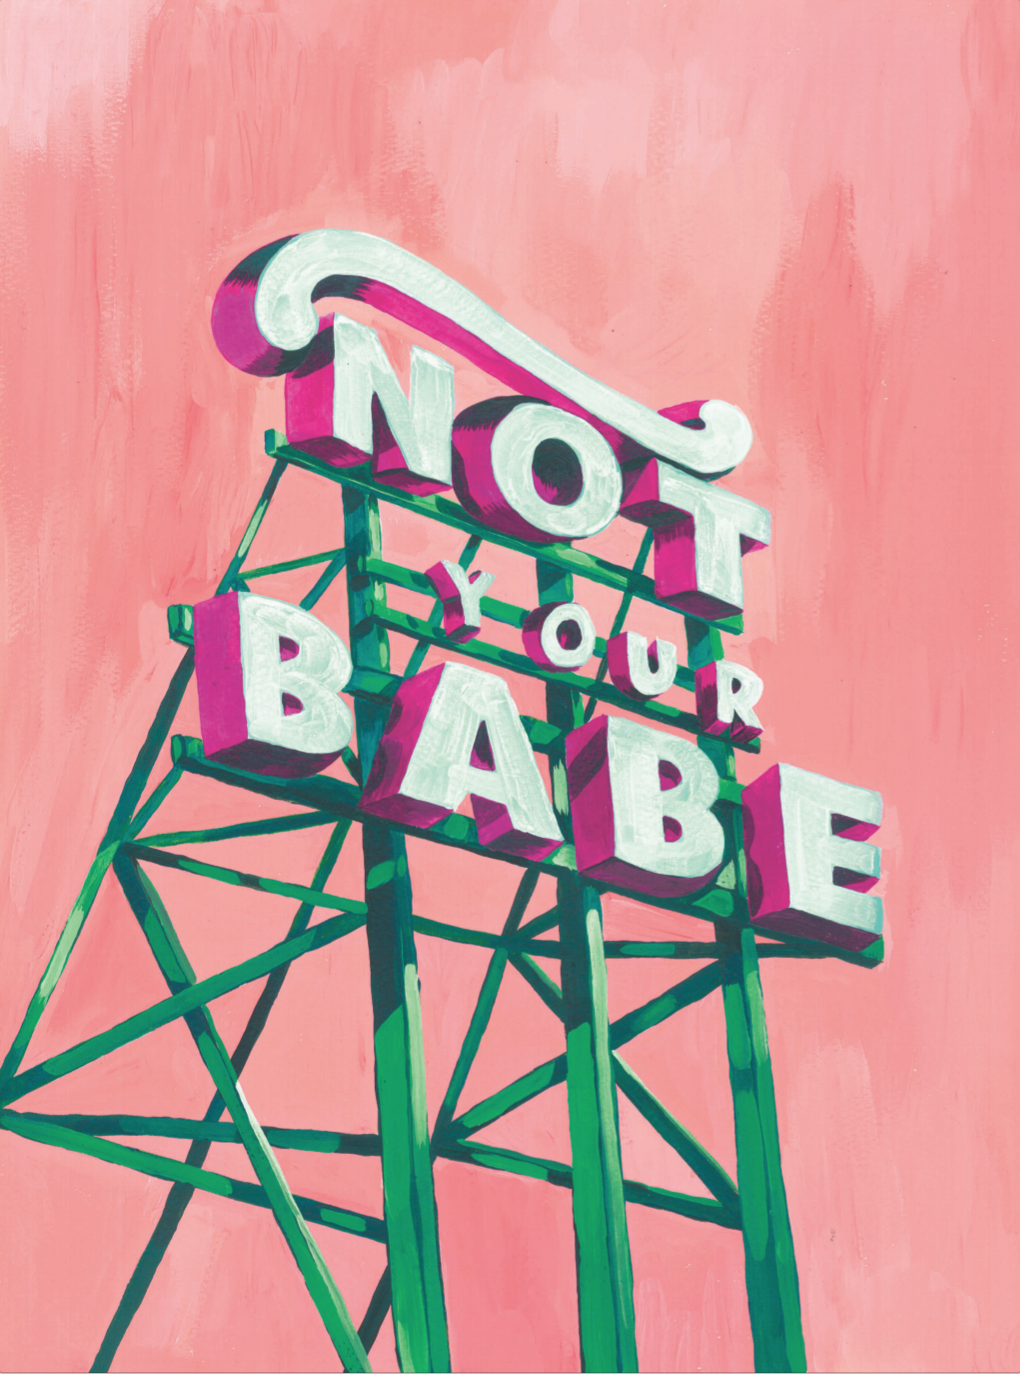 NOT YOUR BABE - £19.95